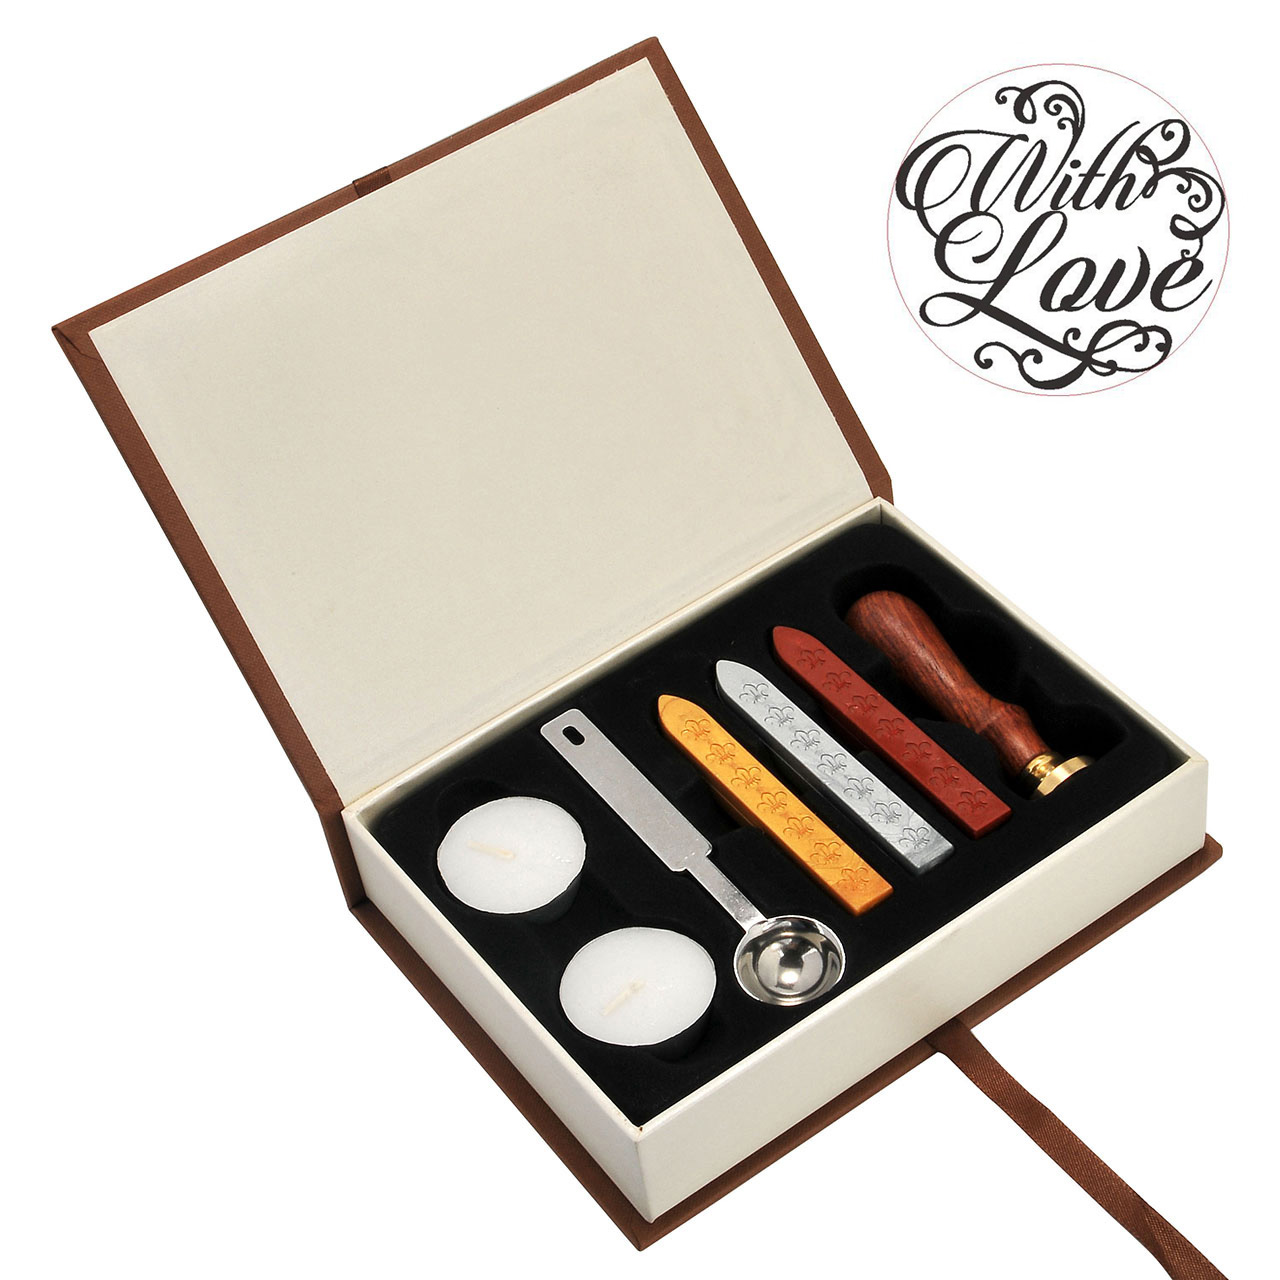 With Love Wax Seal Stamp Set, Yoption Classic Vintage Seal Wax Stamp Set, Retro Seal Stamps Maker Gift Box Set (With Love)